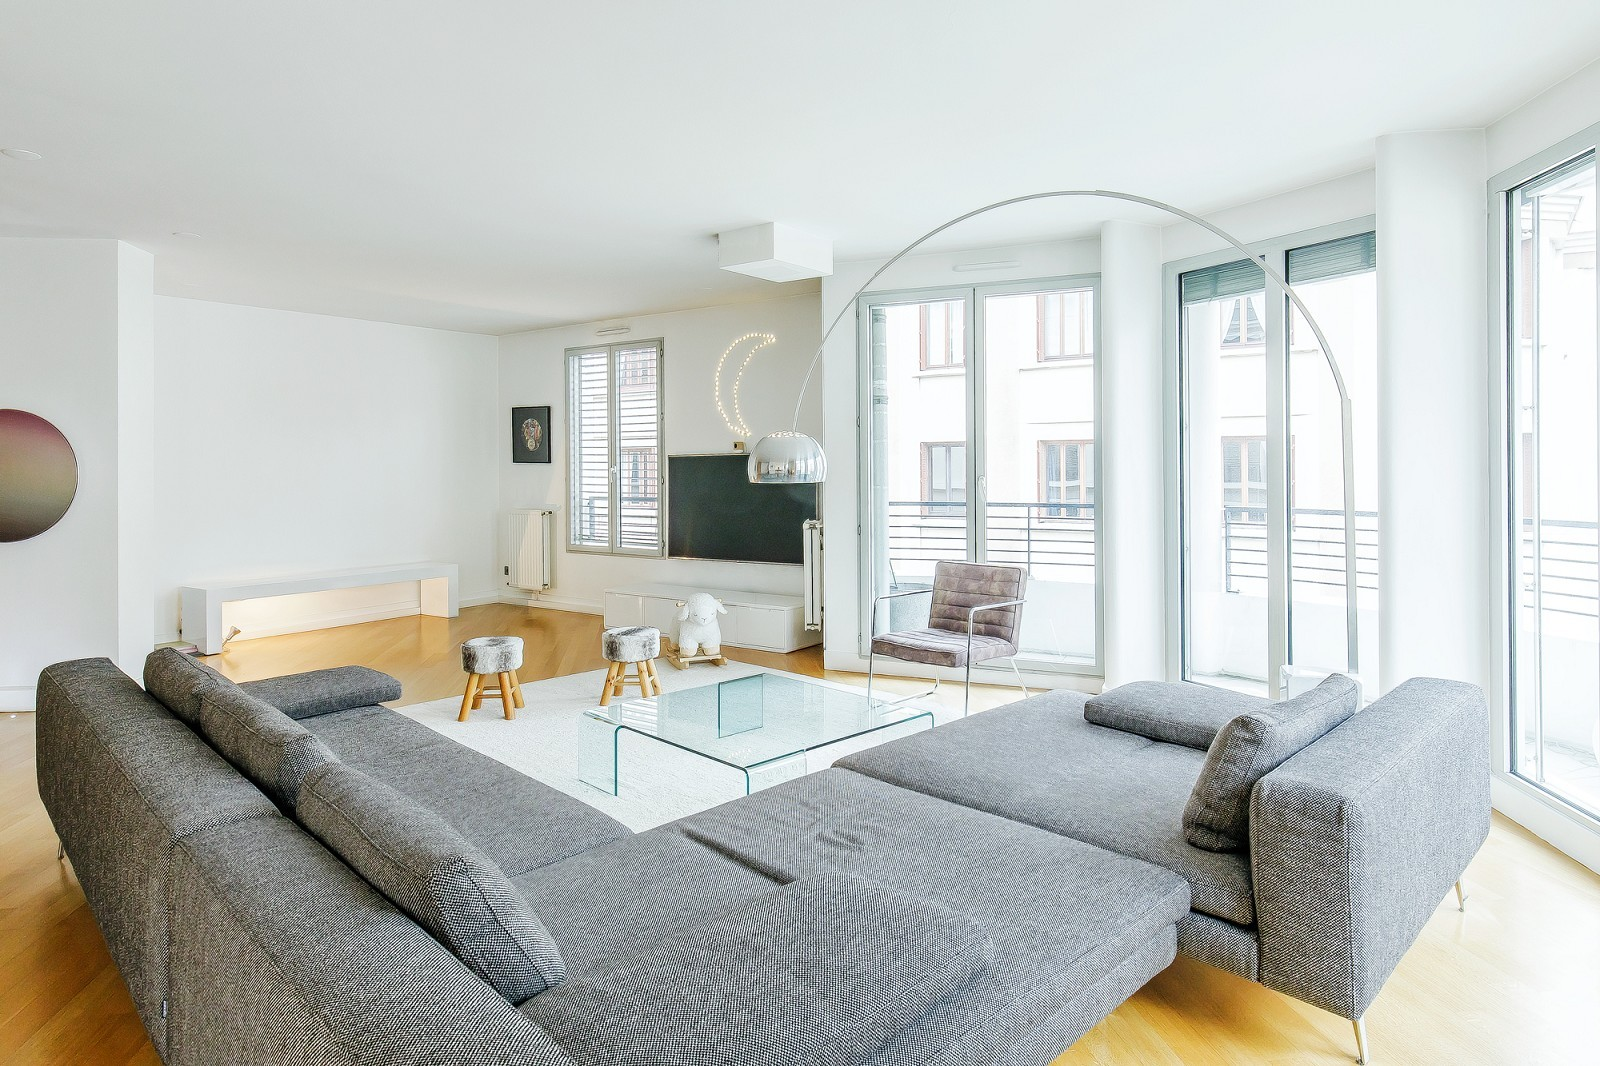 EXCLUSIVE RIGHTS - LYON 6 -  APARTMENT OF 1,754 SQ. FT - 4 BEDROOMS -  DOUBLE GARAGE